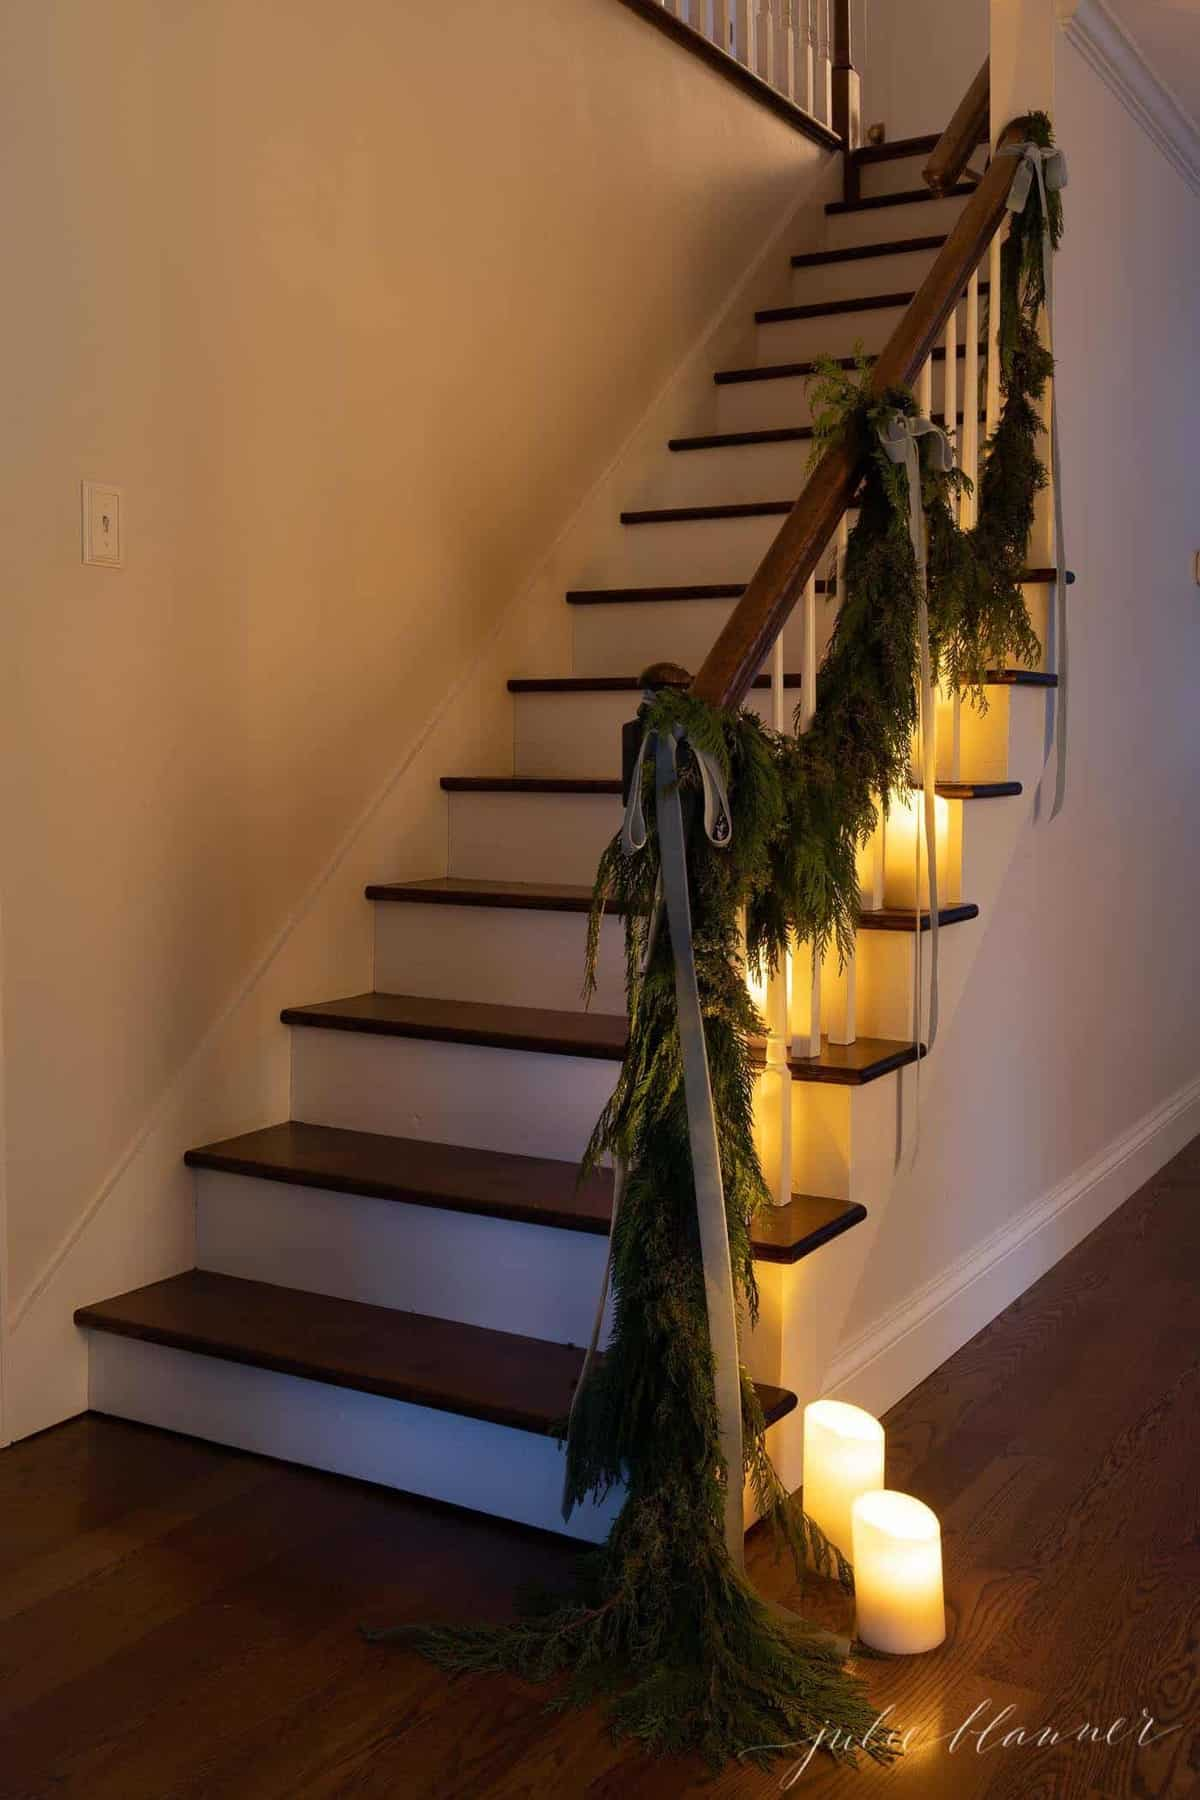 White walls, wooden staircase decorated with candles and garland at Christmas.